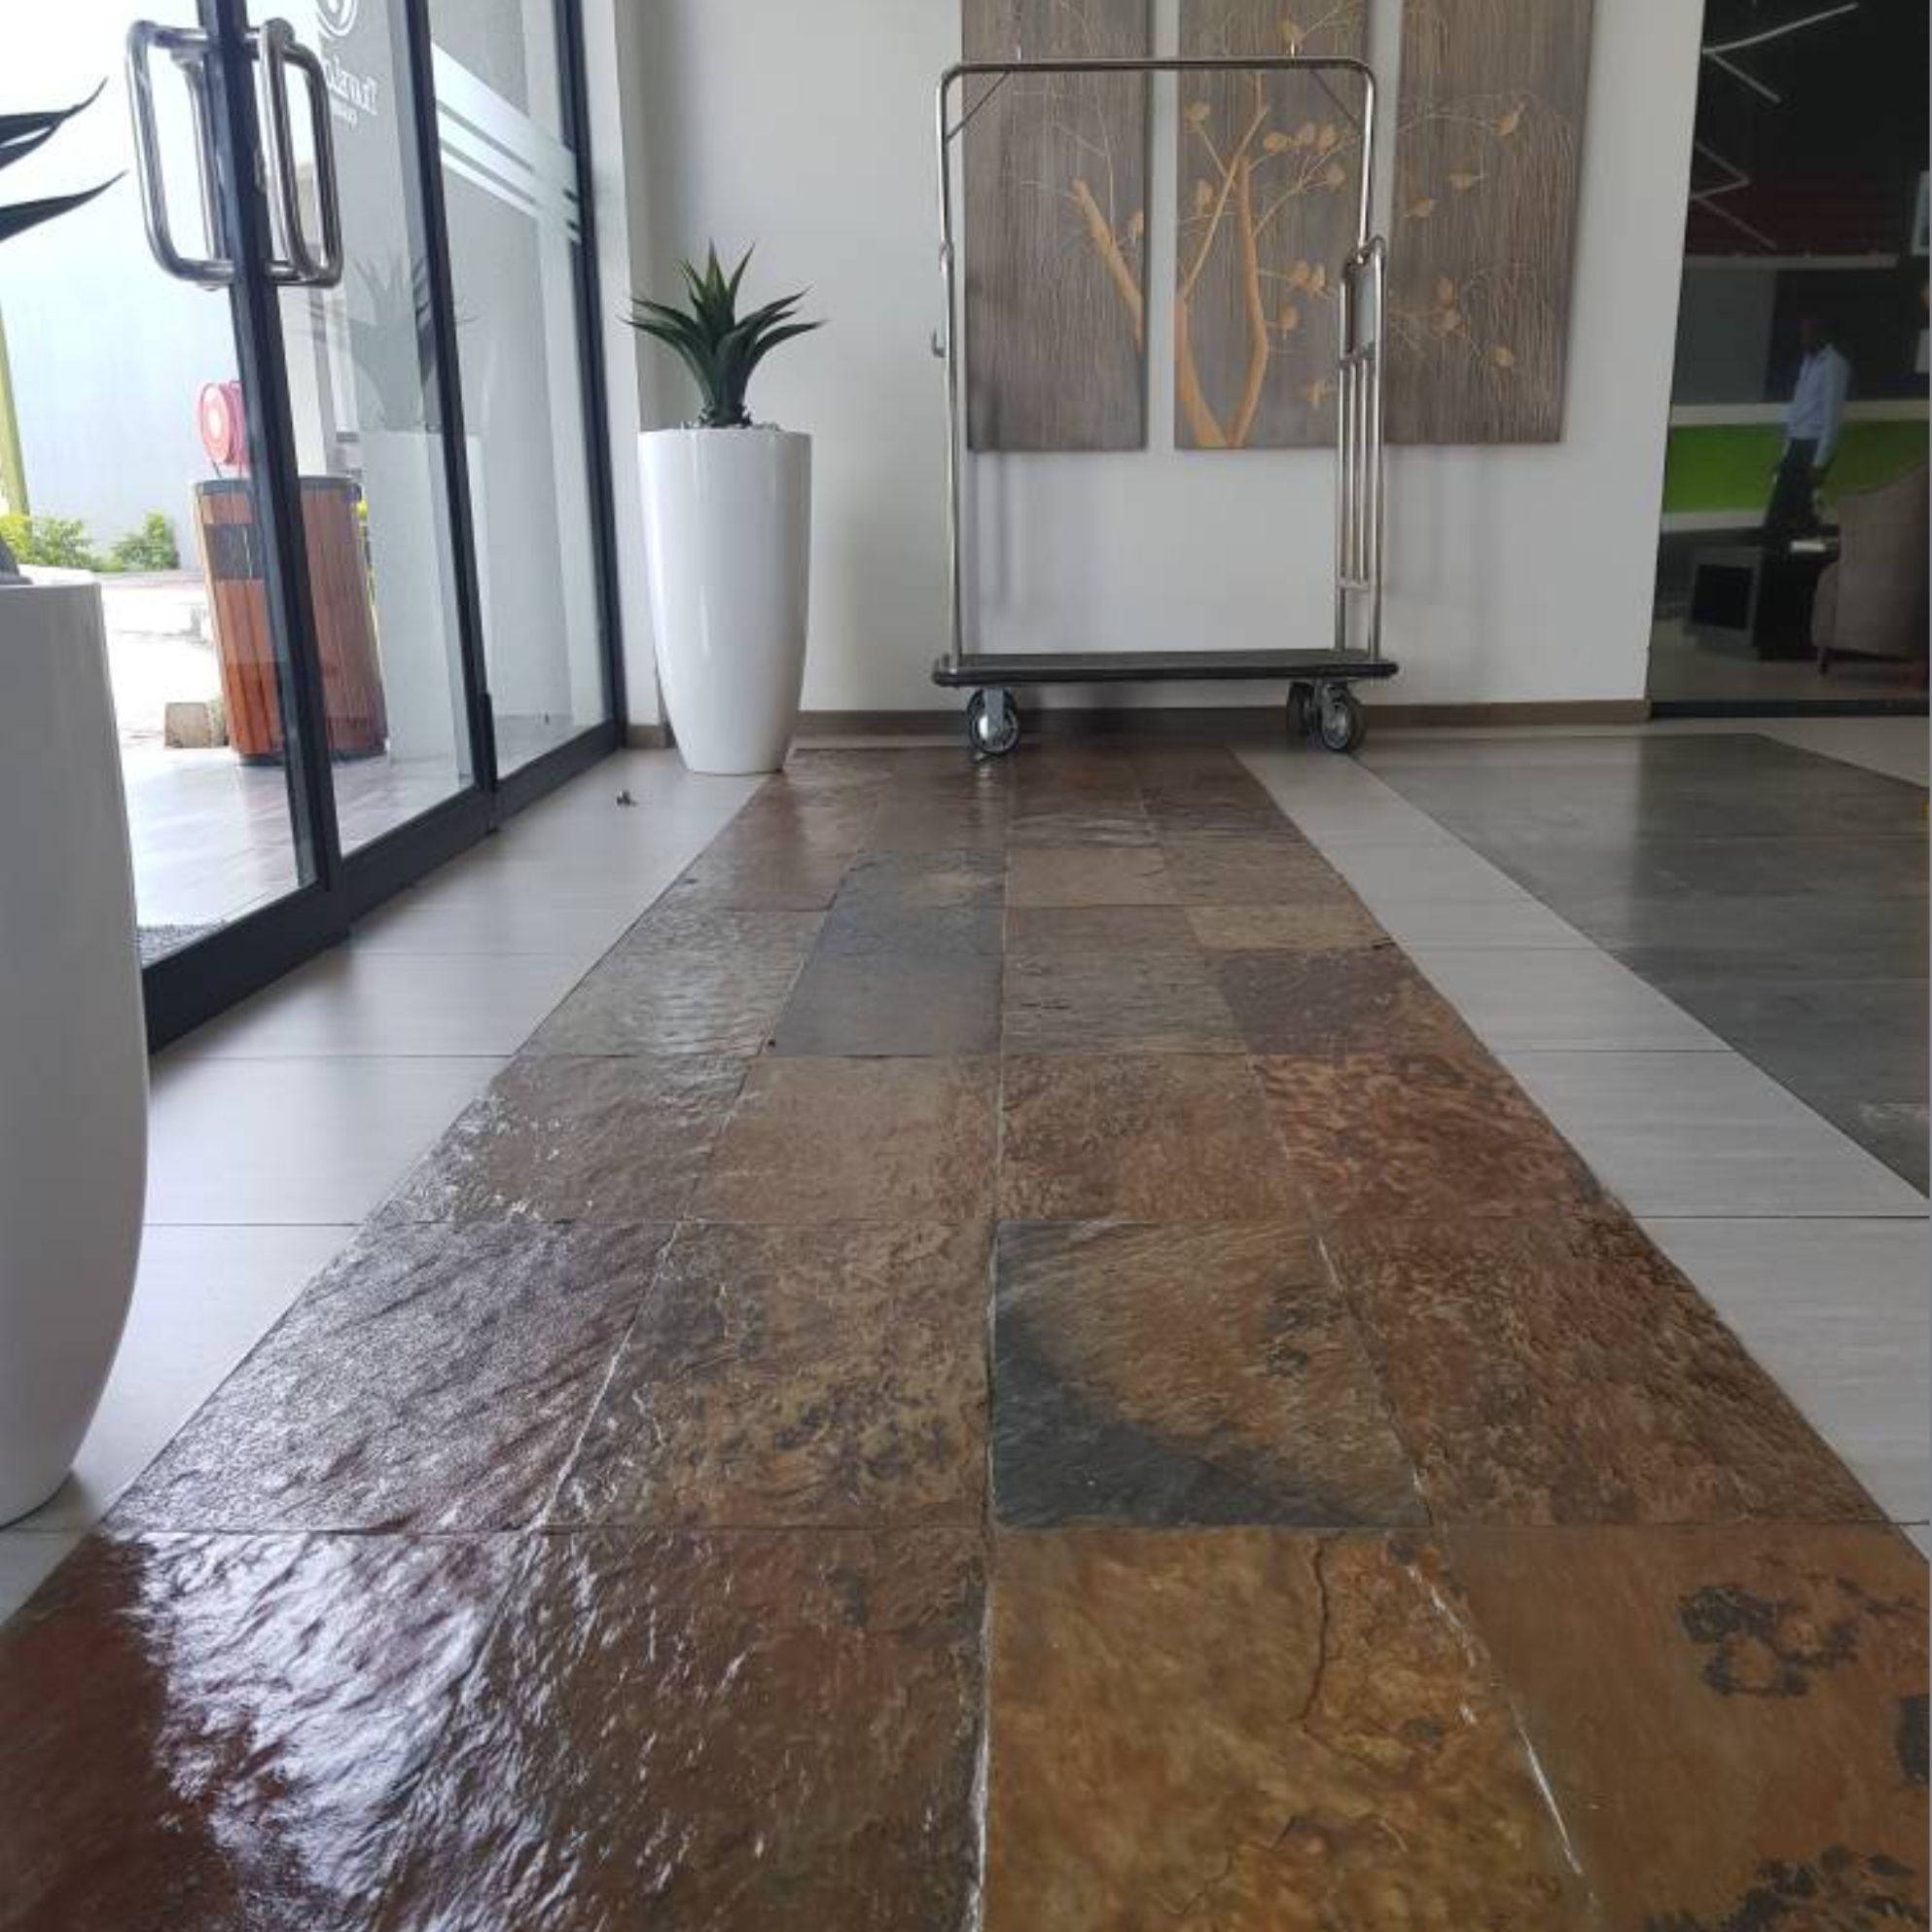 A waterborne tile and cement sealer to protect unglazed